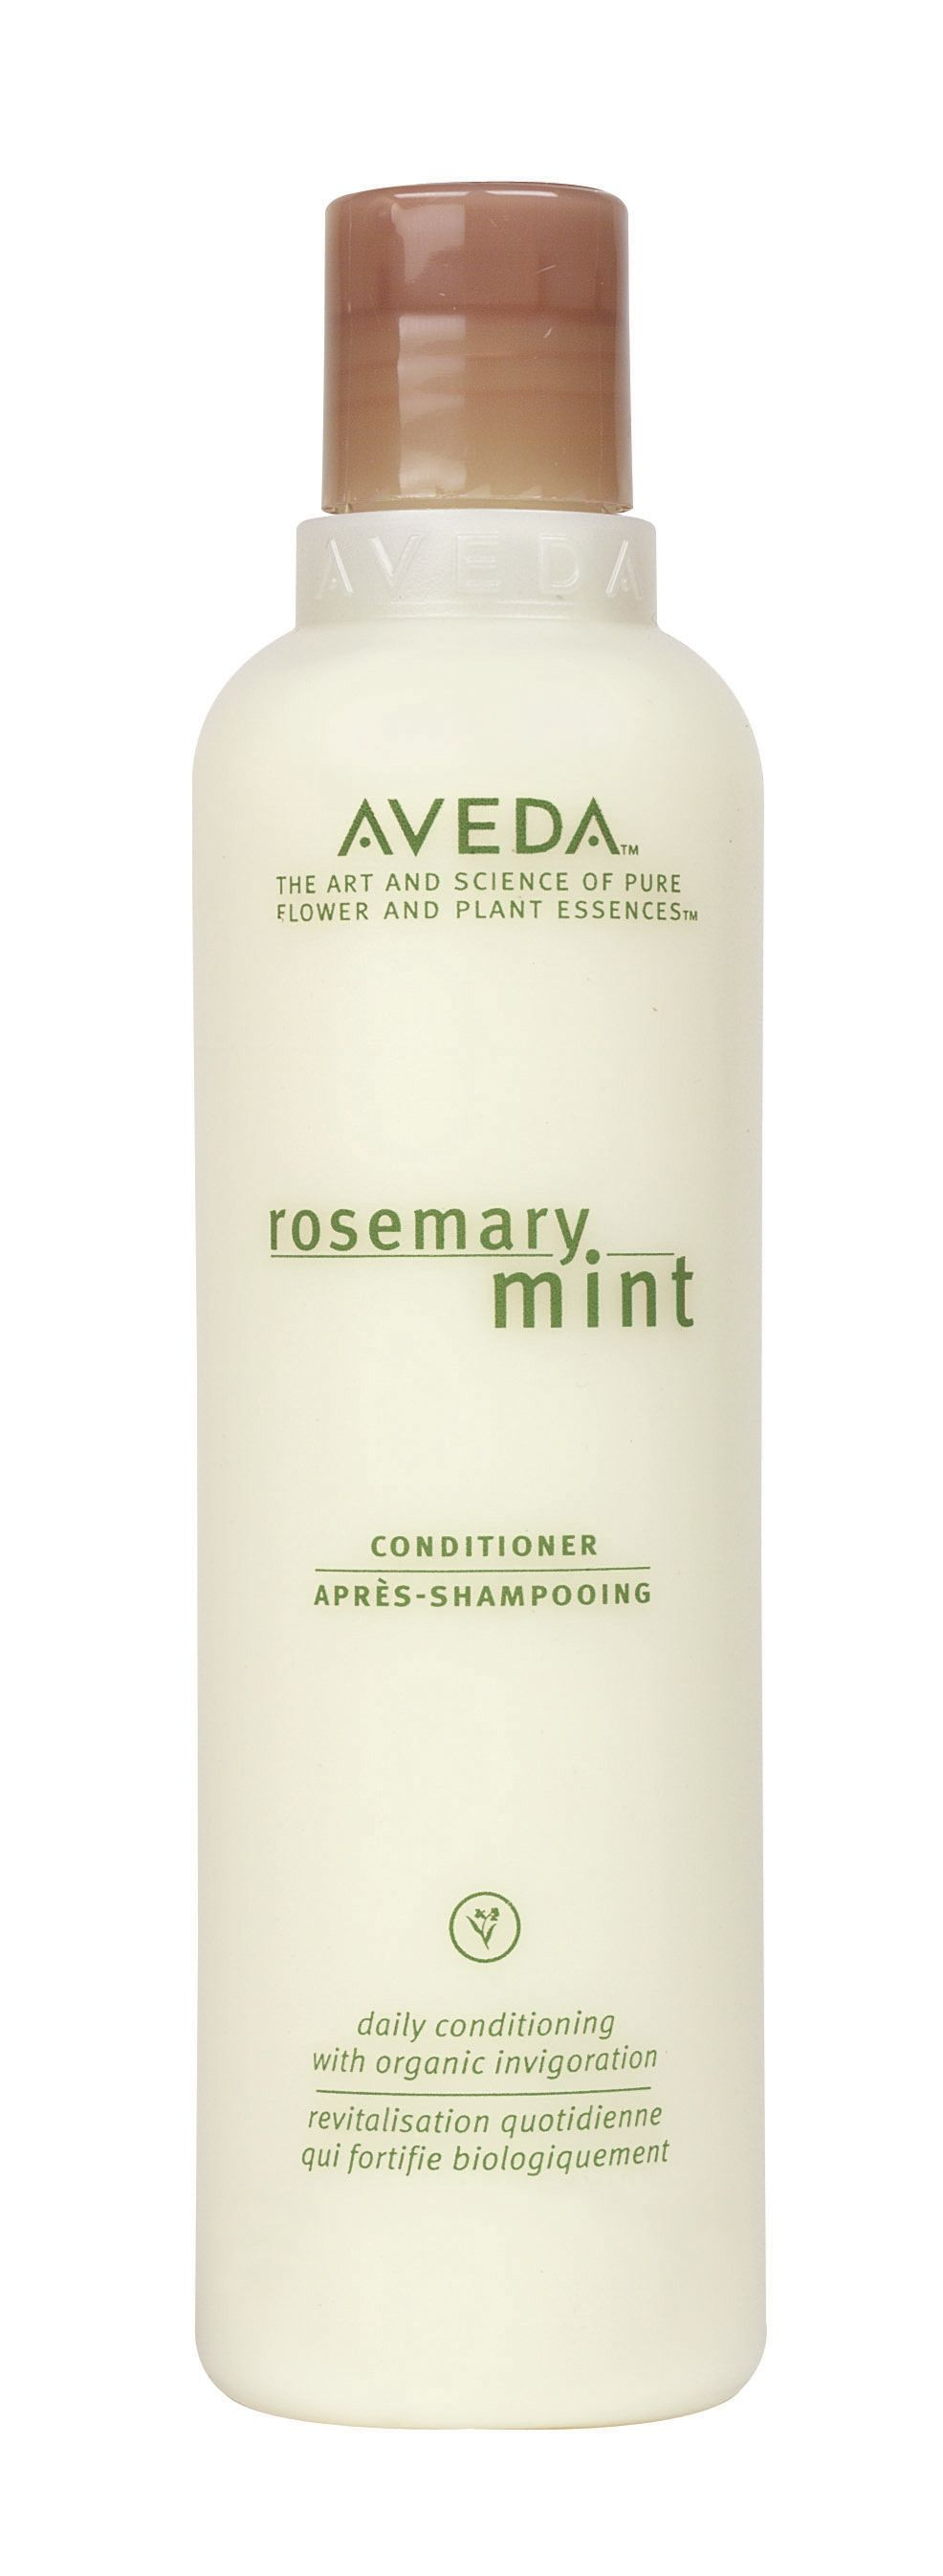 Rosemary Mint Conditioner 50ml